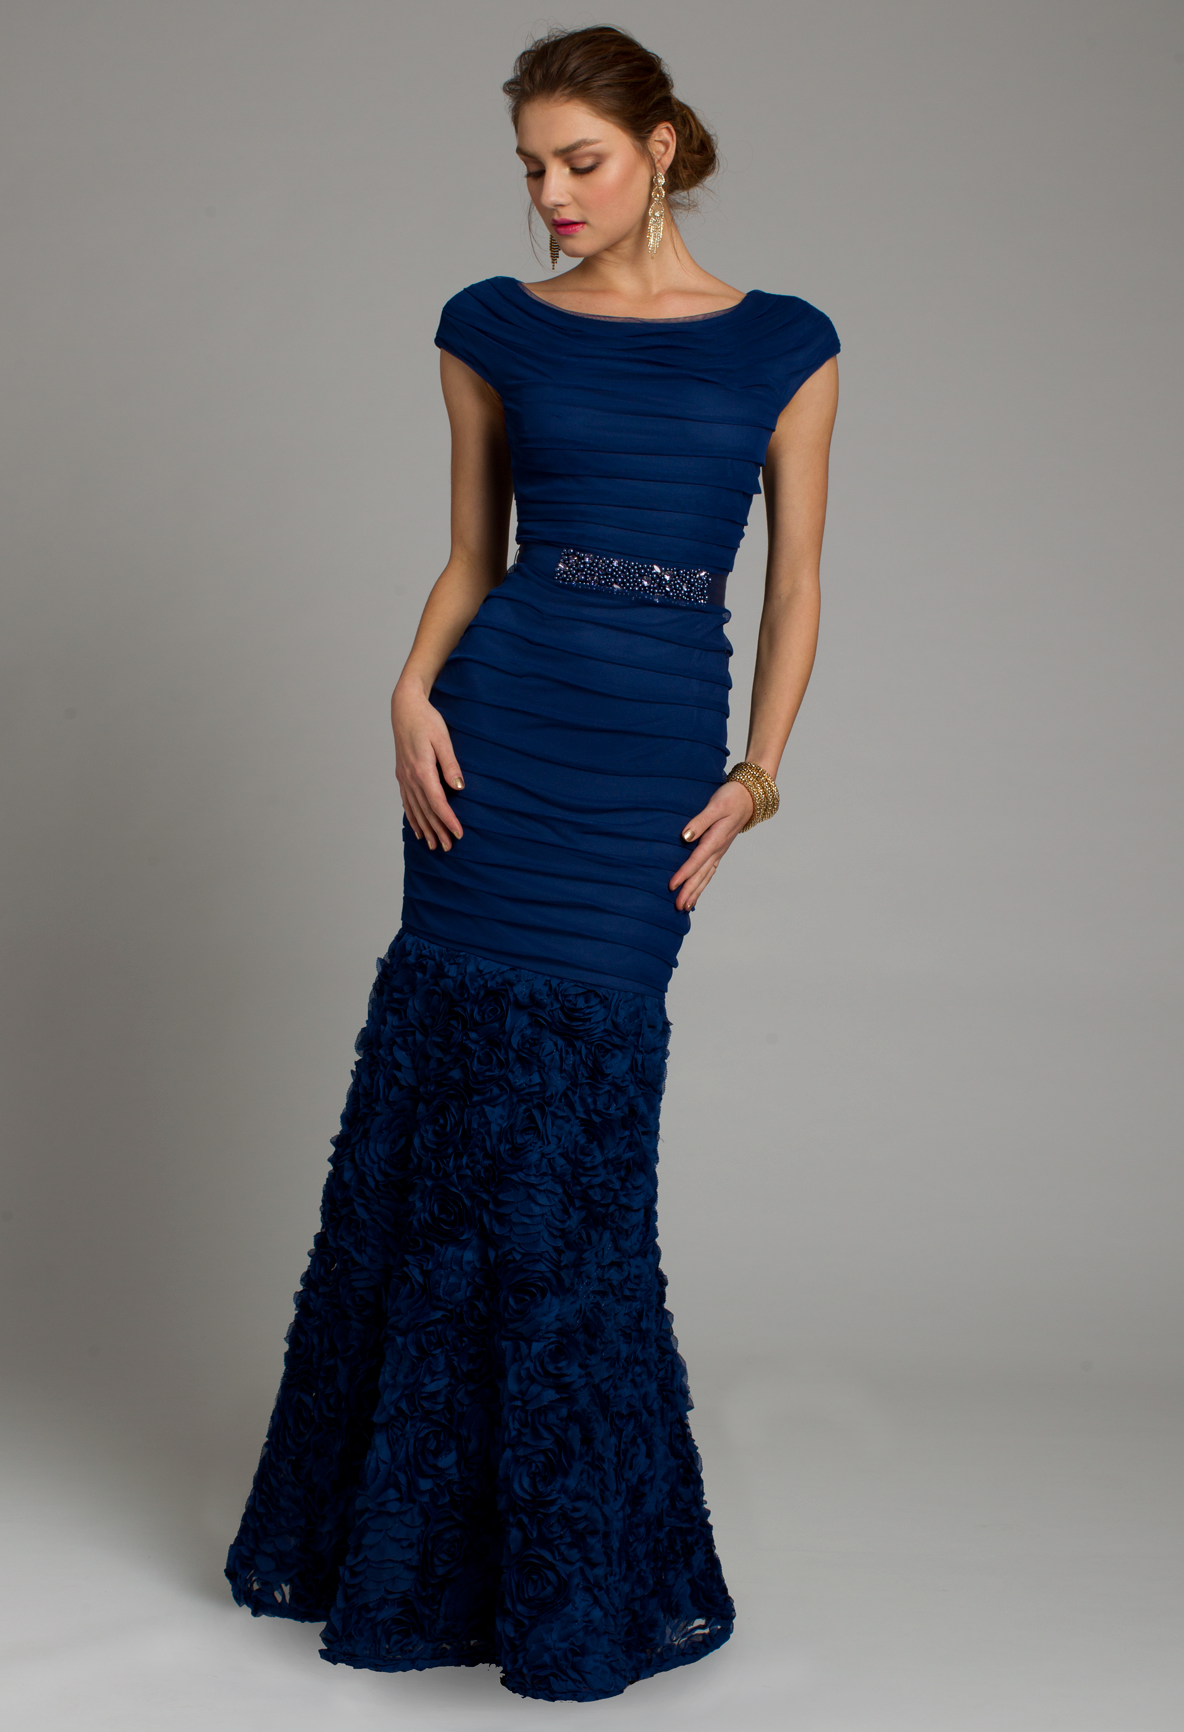 Sophisticated Evening Dress